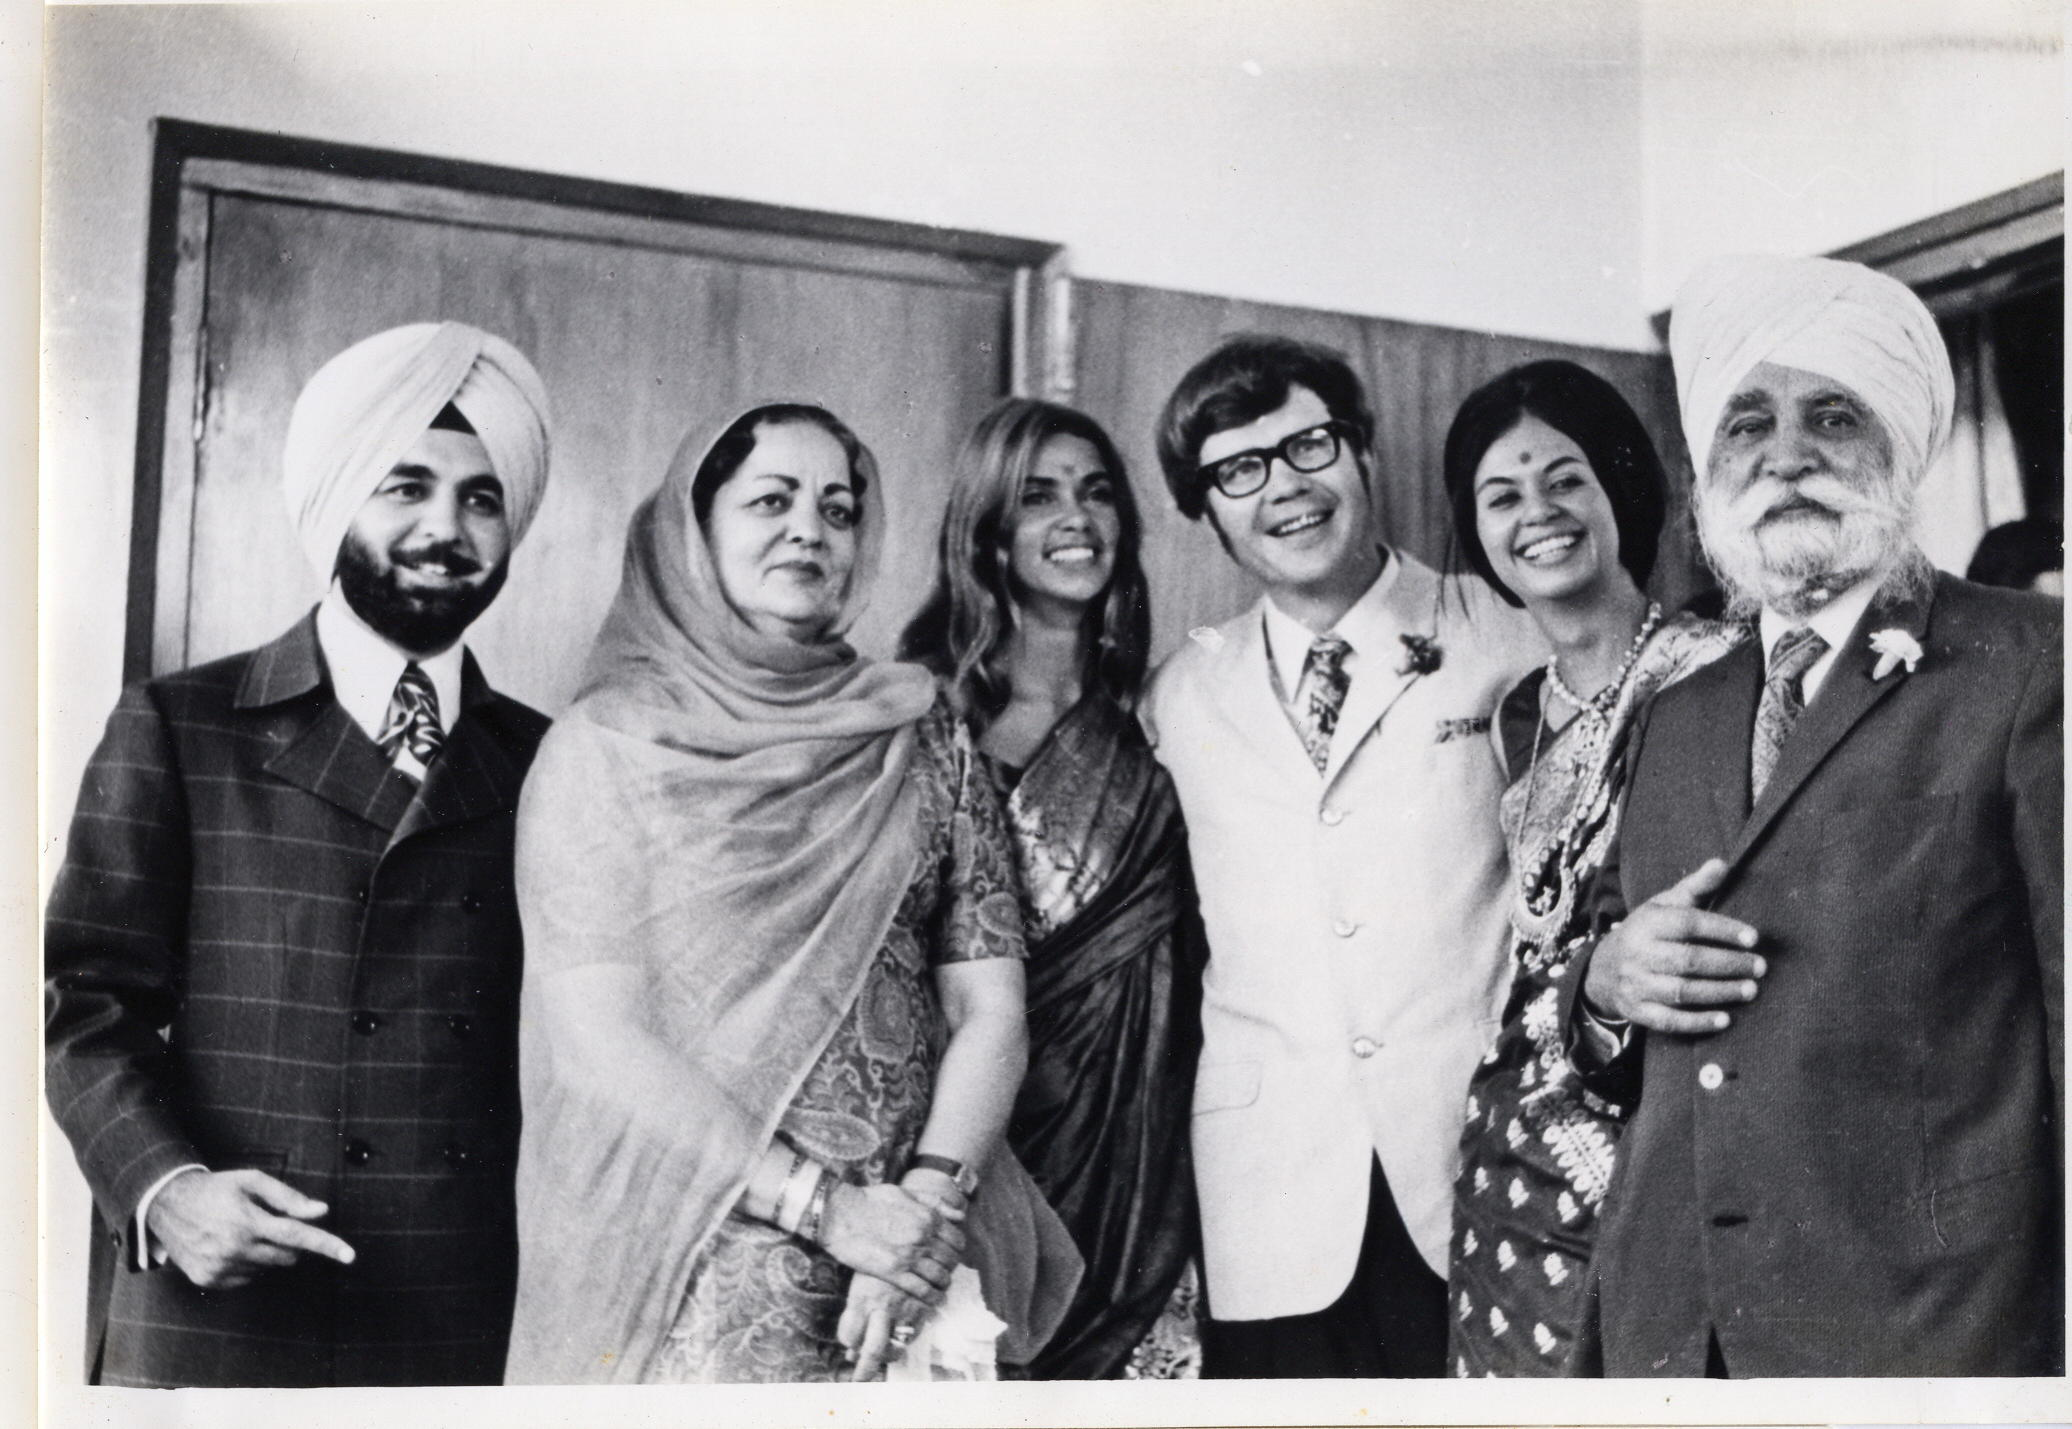 Tondalaya and Ron's wedding in Delhi, 1971.